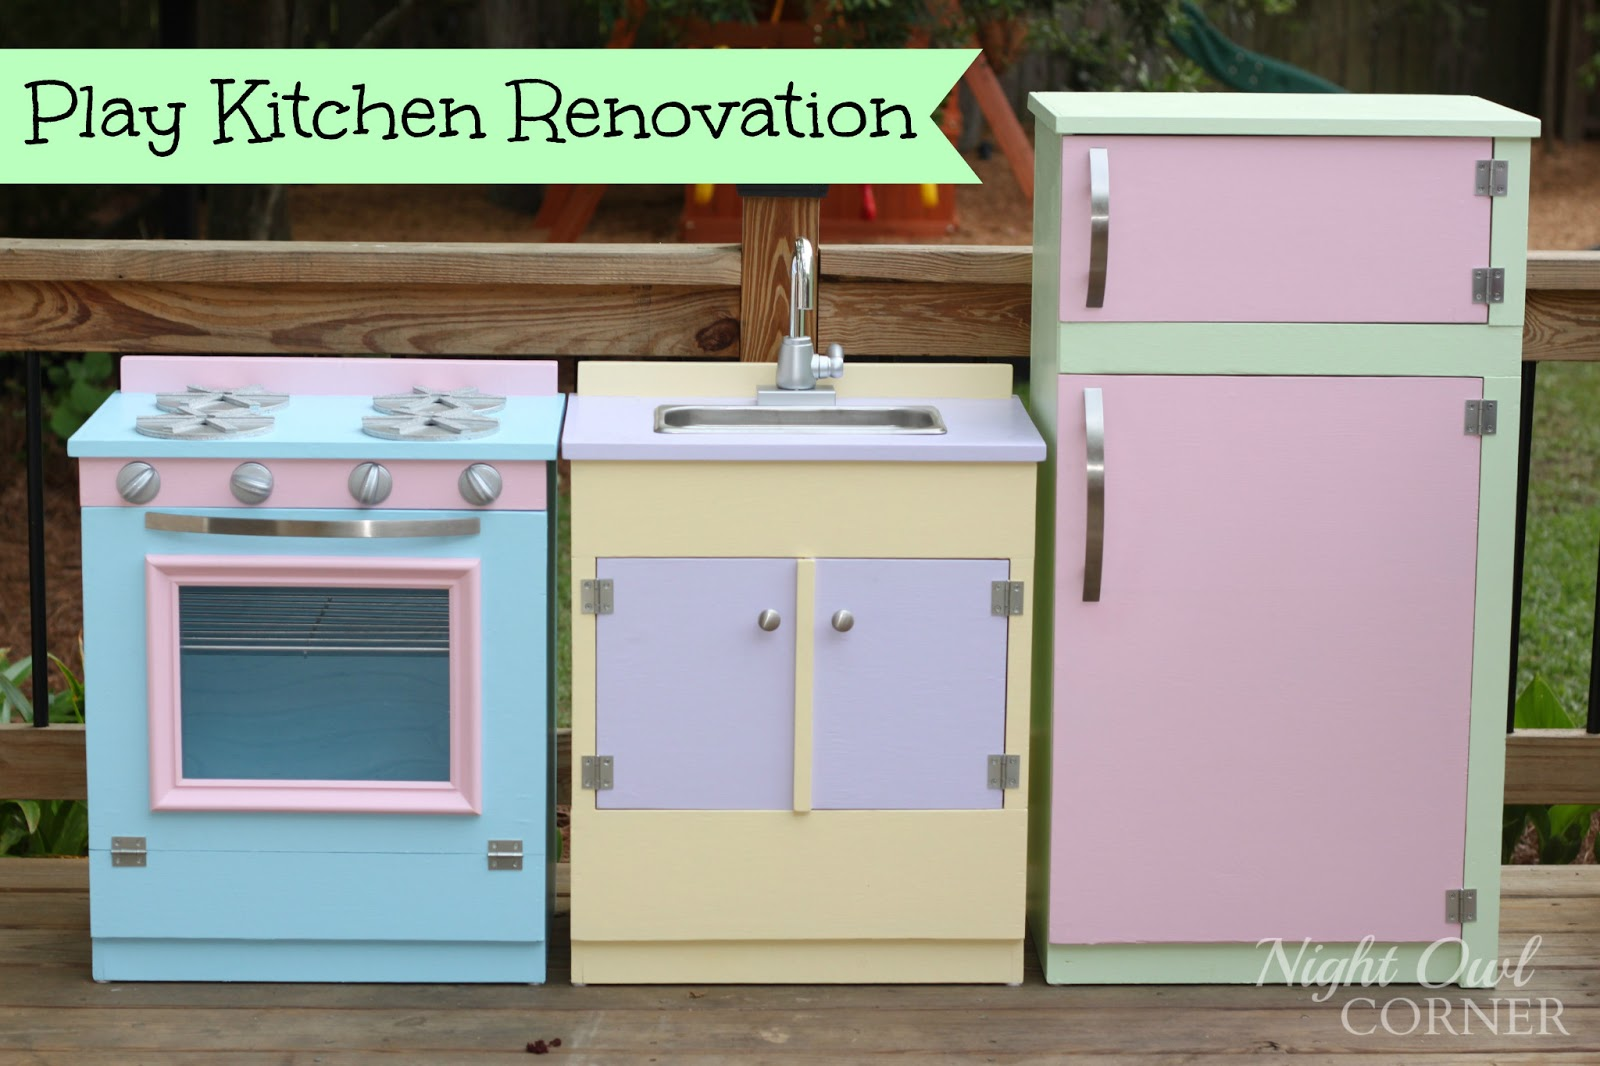 Cliparts page 496 best clipart images download for you for Play kitchen designs